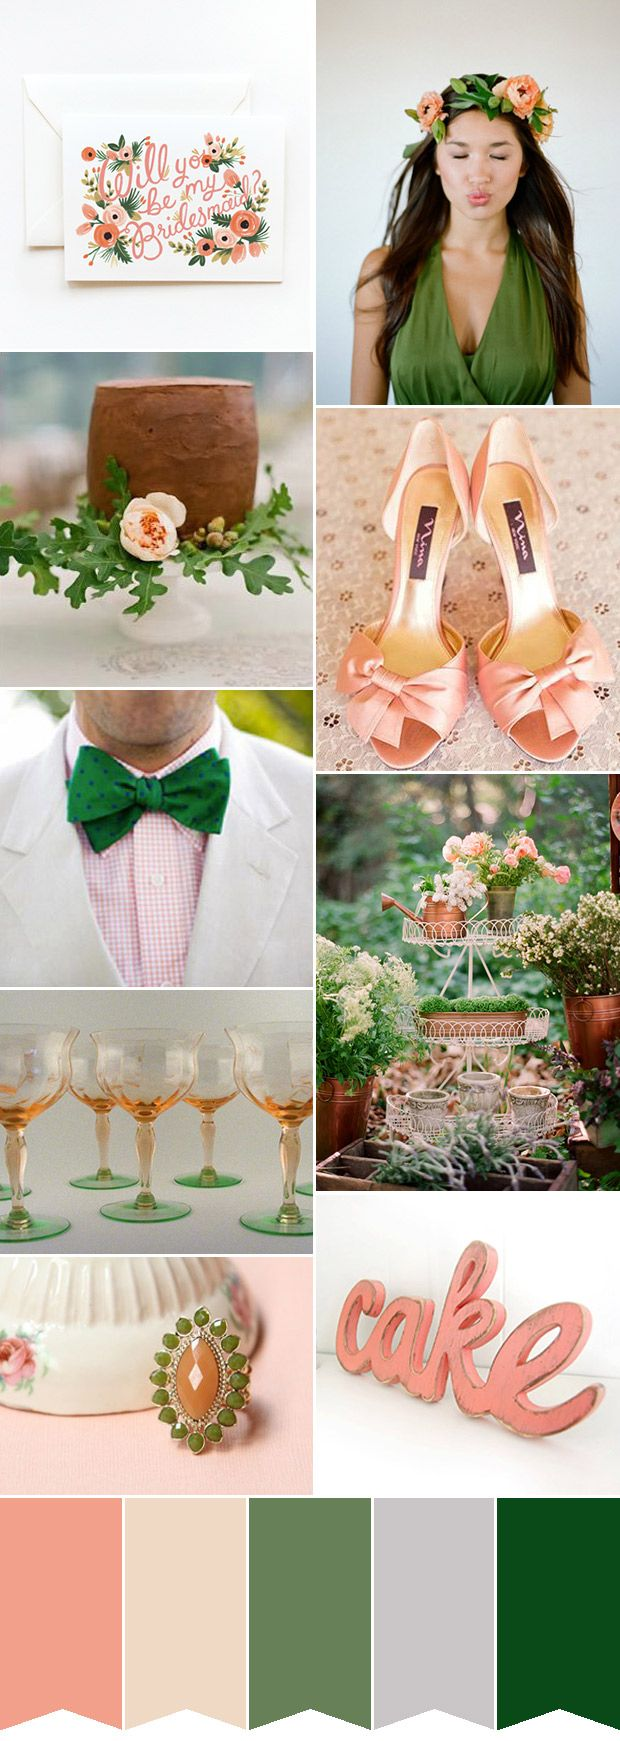 Peach and green wedding ideas - the perfect green and peach wedding color palette | www.onefabday.com